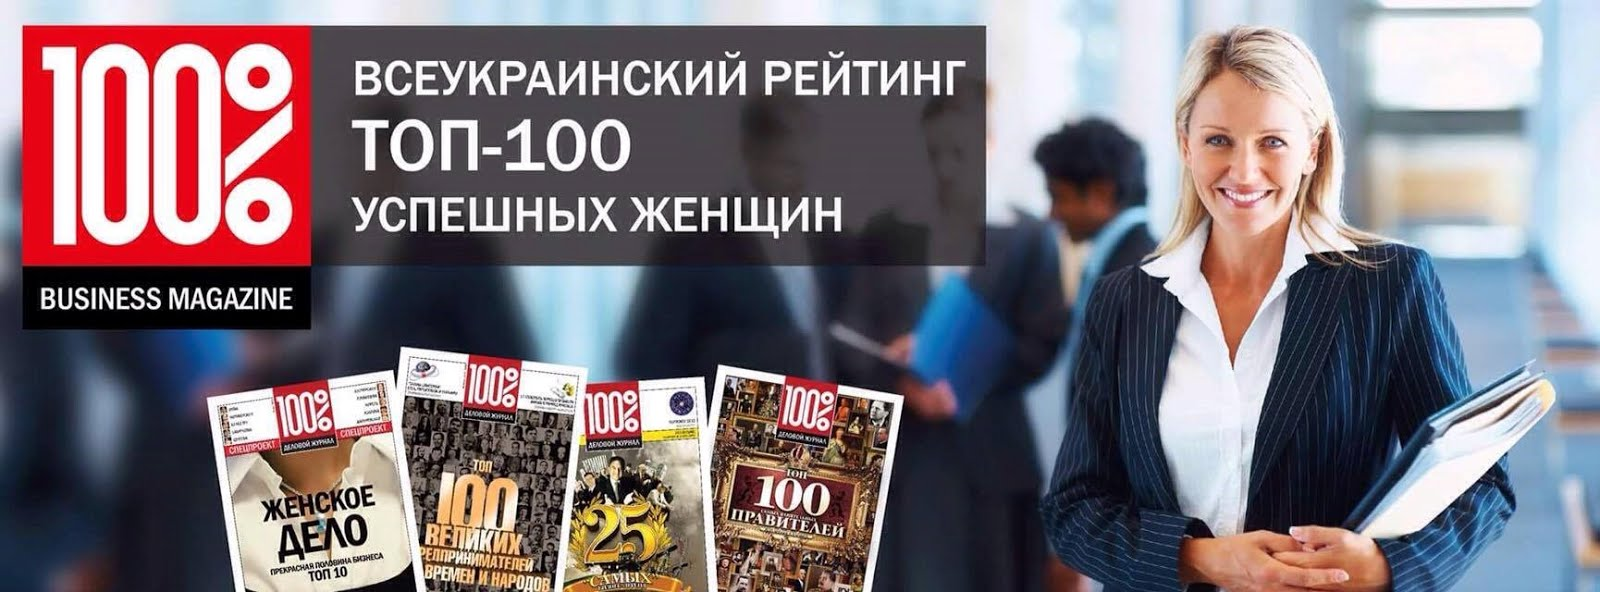 "Рейтинг ""TOP 100"""